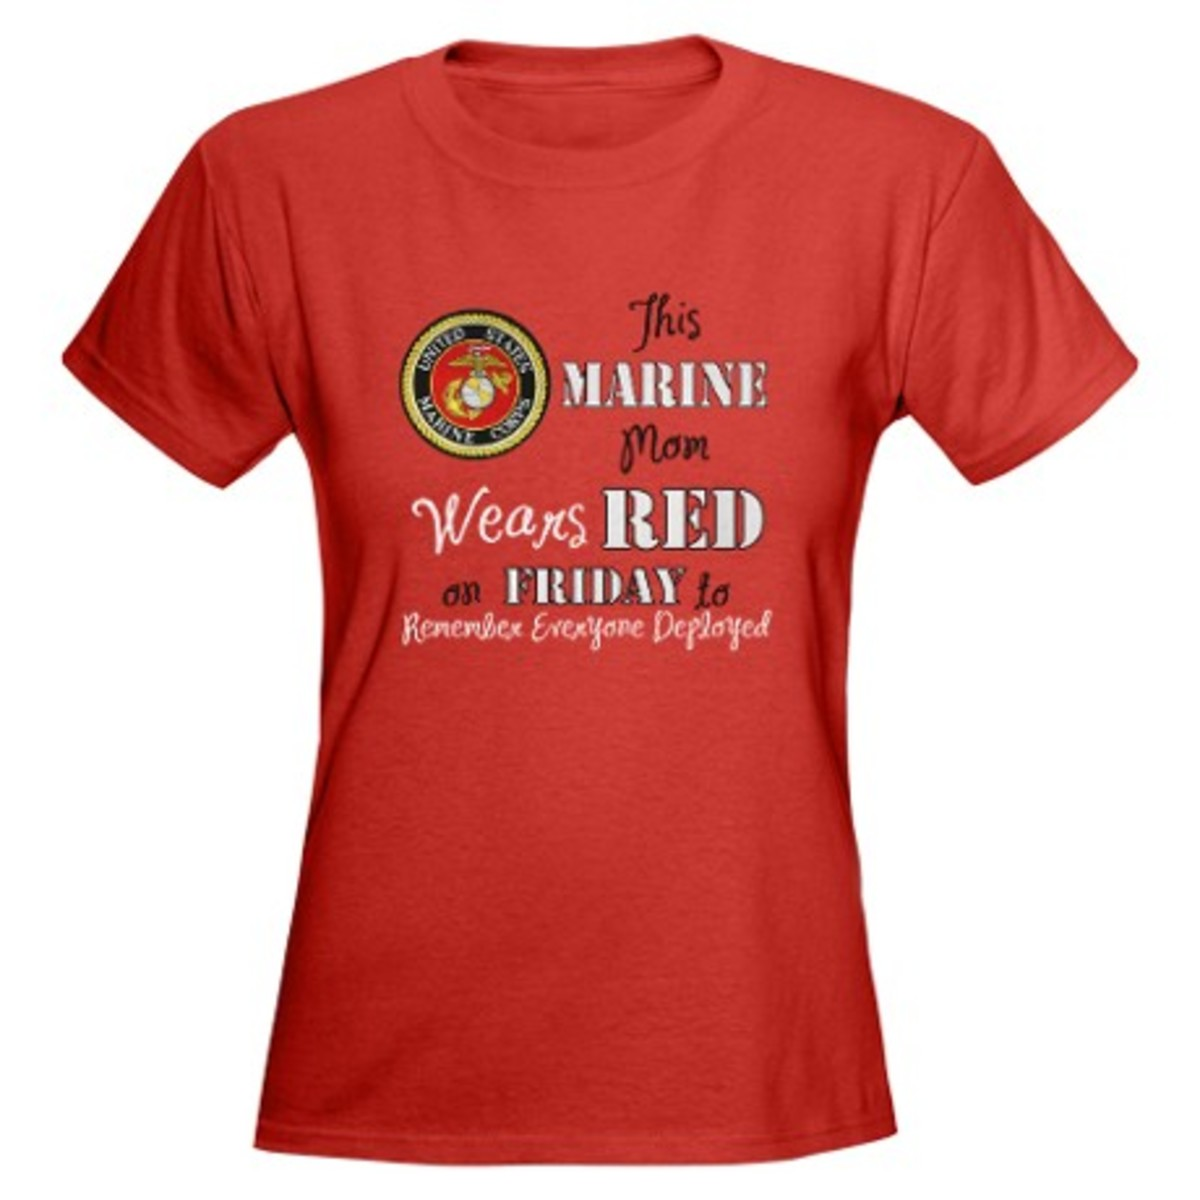 Order Red Friday Shirt on CafePress